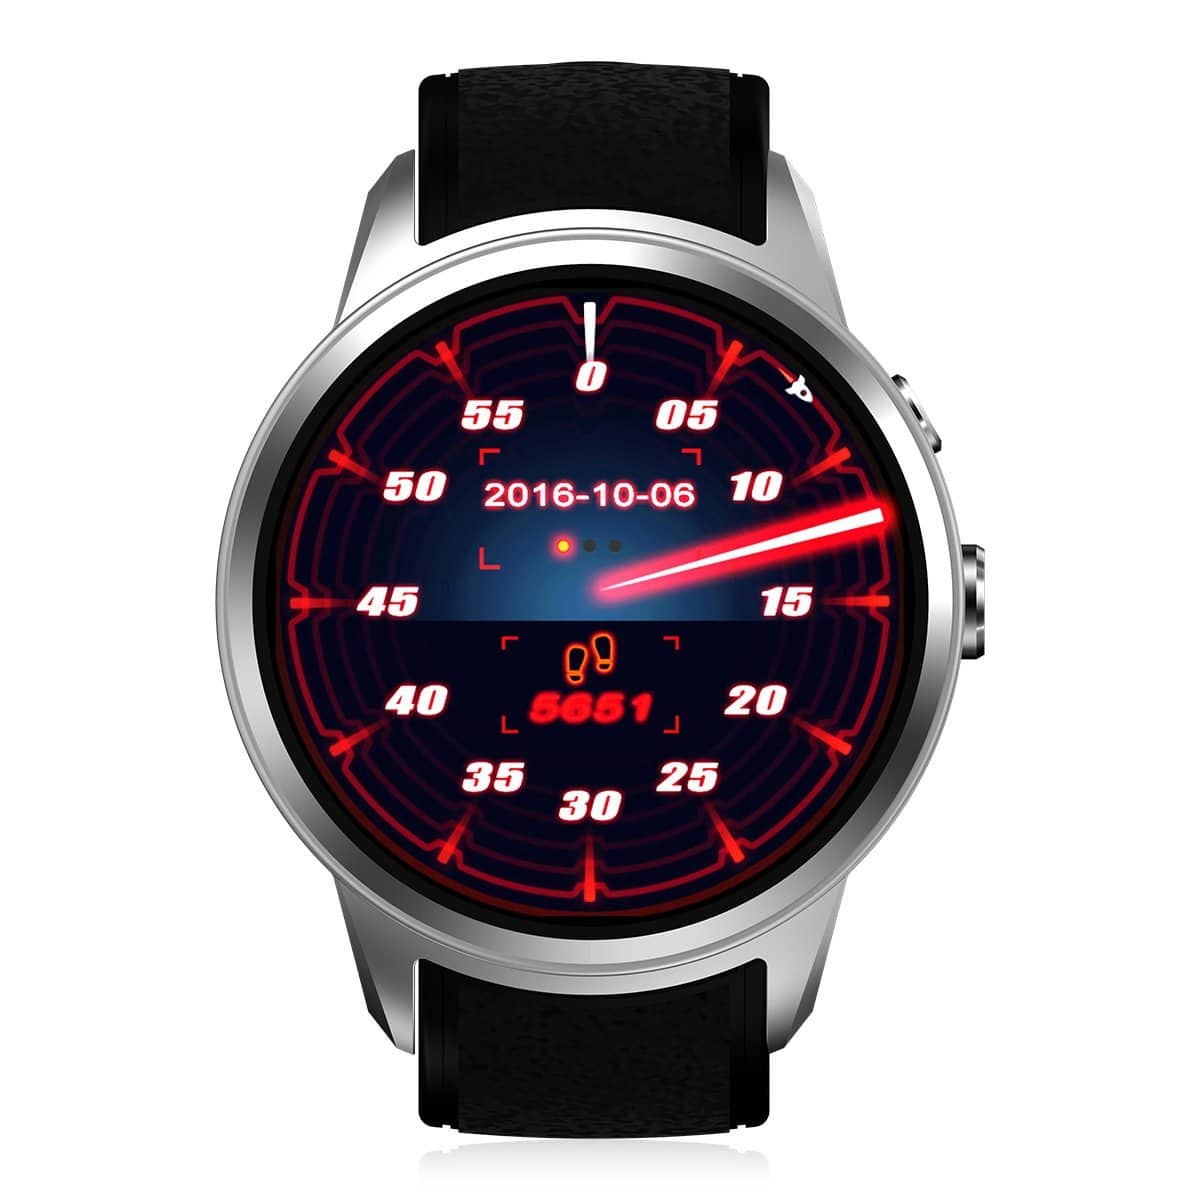 Diggro DI01 Smart Watch Android 5.1 IP67 MTK6580 1GB/16GB Nano SIM 3G WIFI 2.0MP Camera Call Heart Rate Monitor Pedometer Weather Health Reminder for Android IOS $17.99